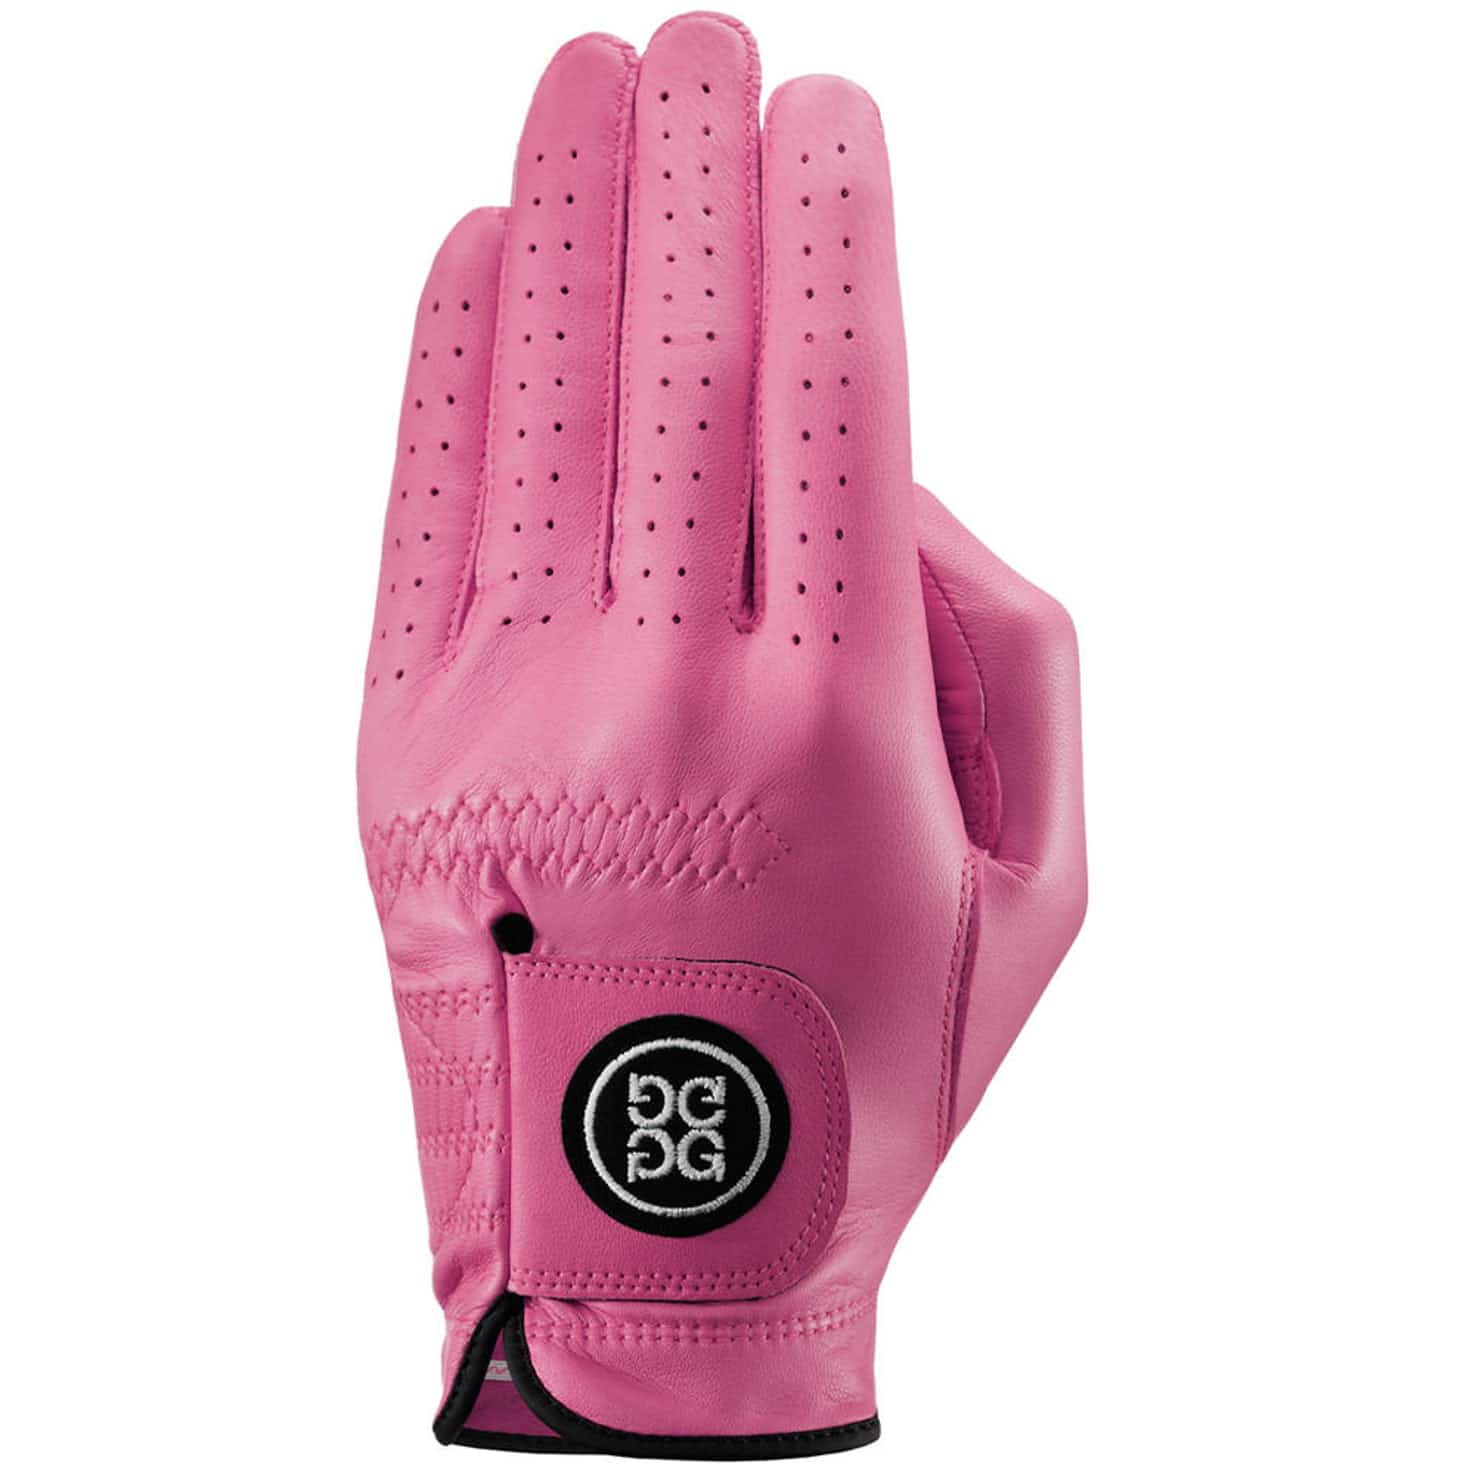 Mens Left Glove Blossom - 2020